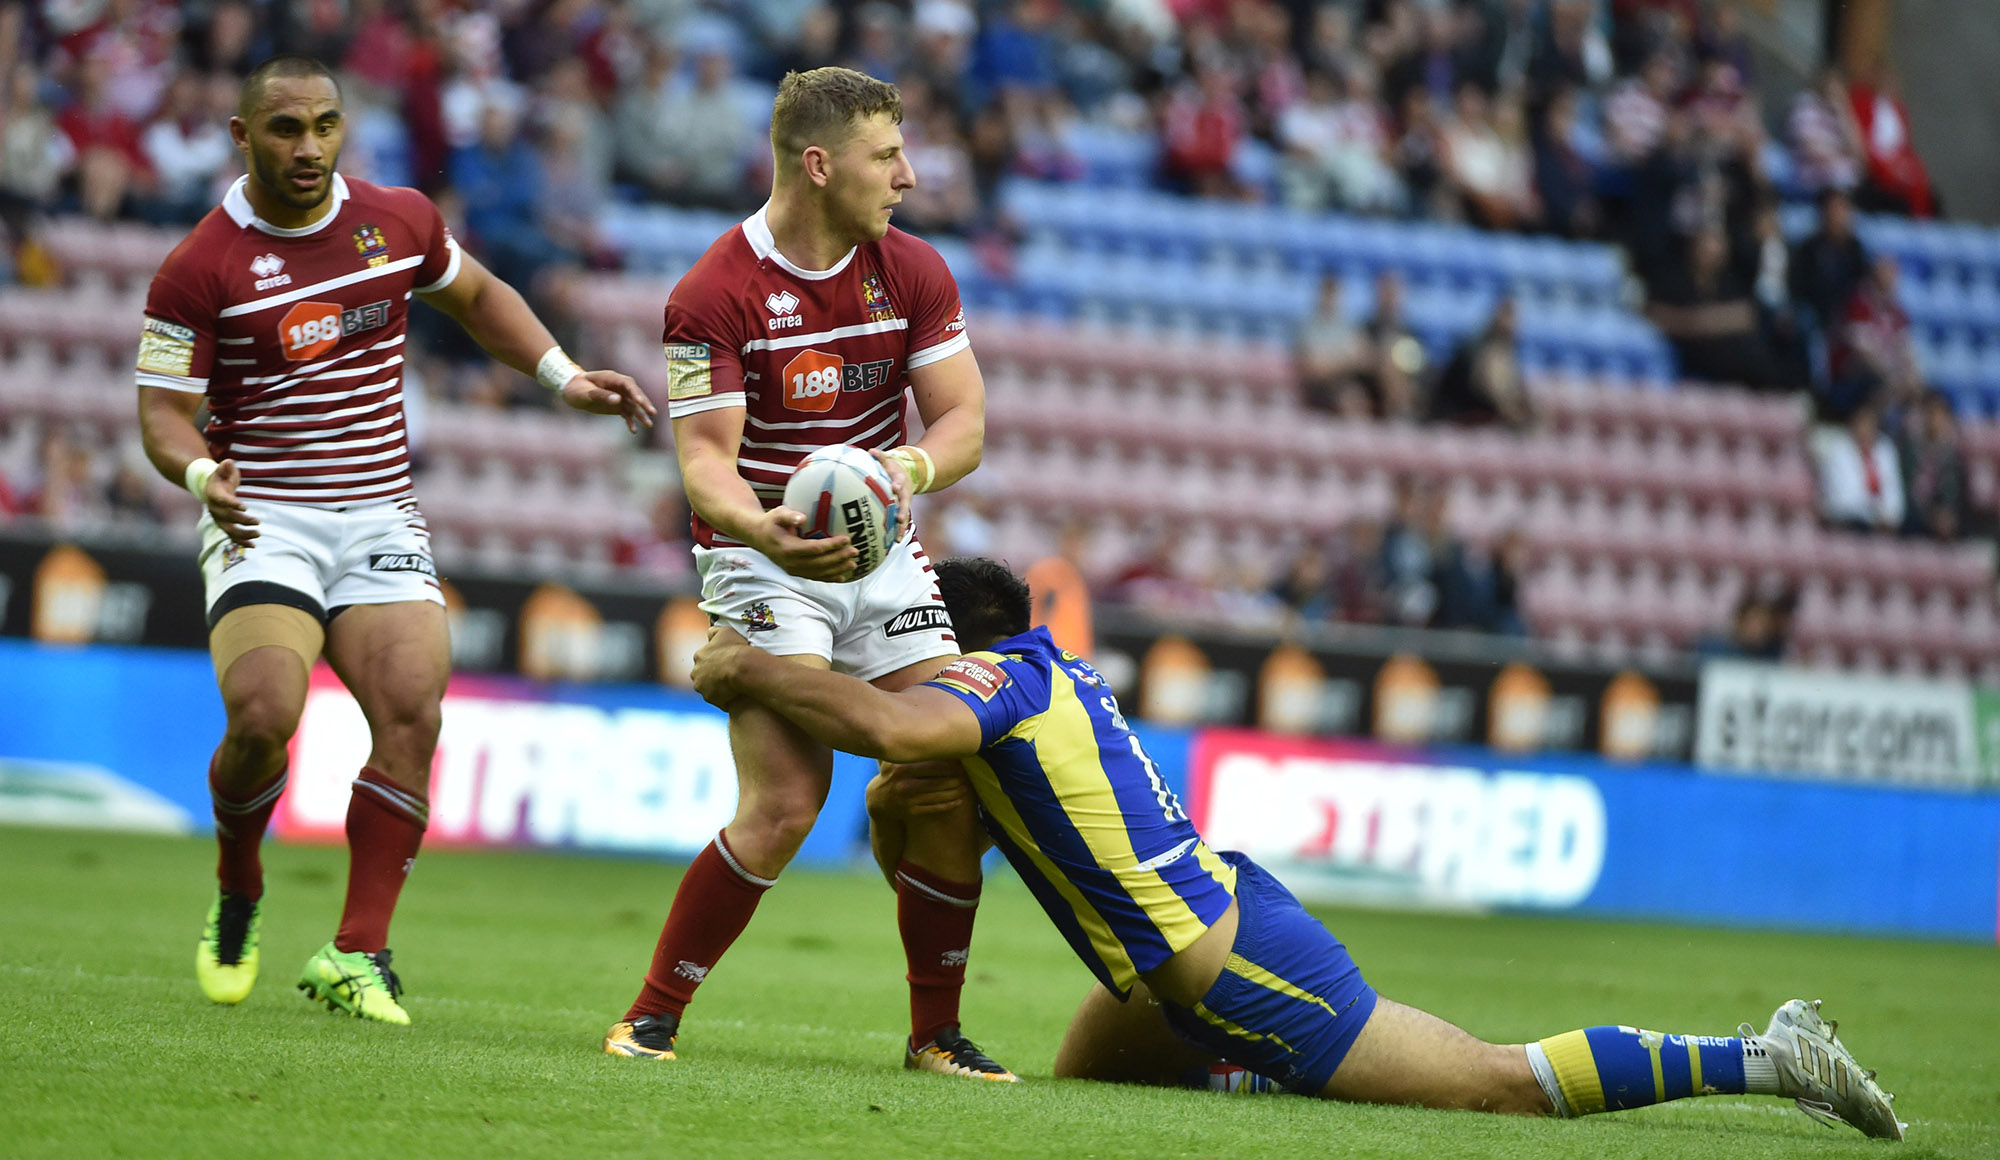 Wigan 10 Warrington 16